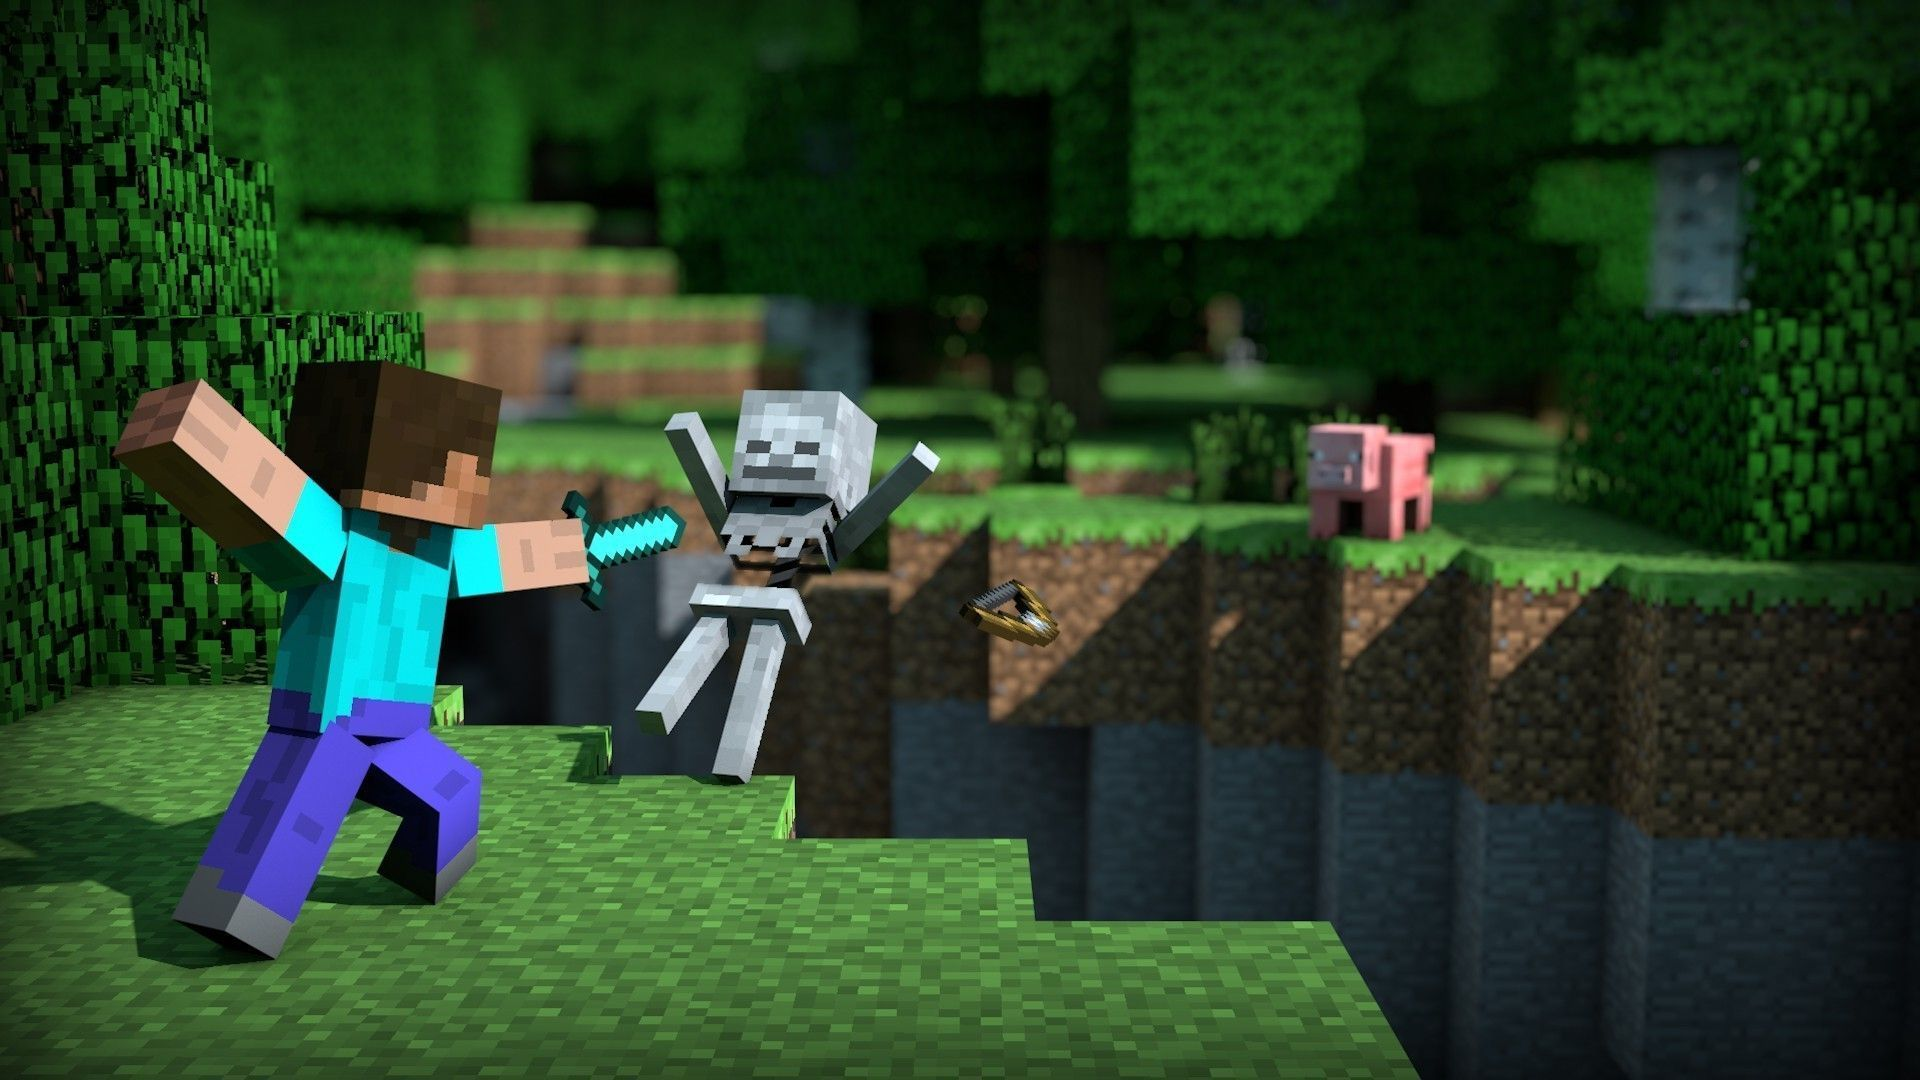 Download Wallpaper Minecraft Microsoft - 699d69f67aff83b4ee885711f5fb44e6  You Should Have_712822.jpg